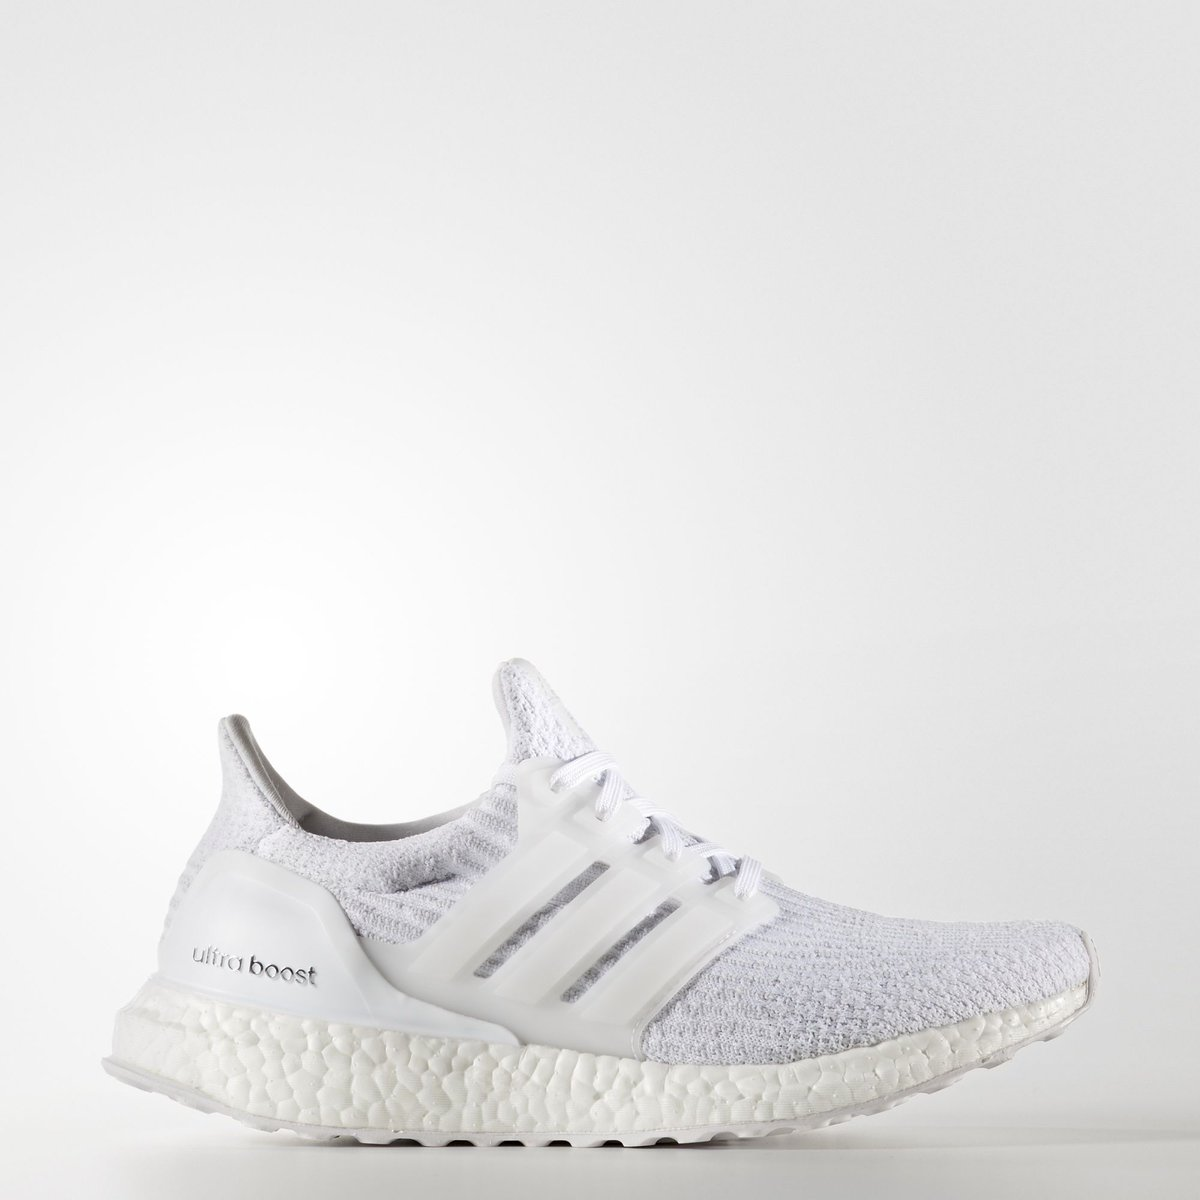 adidas ultra boost us